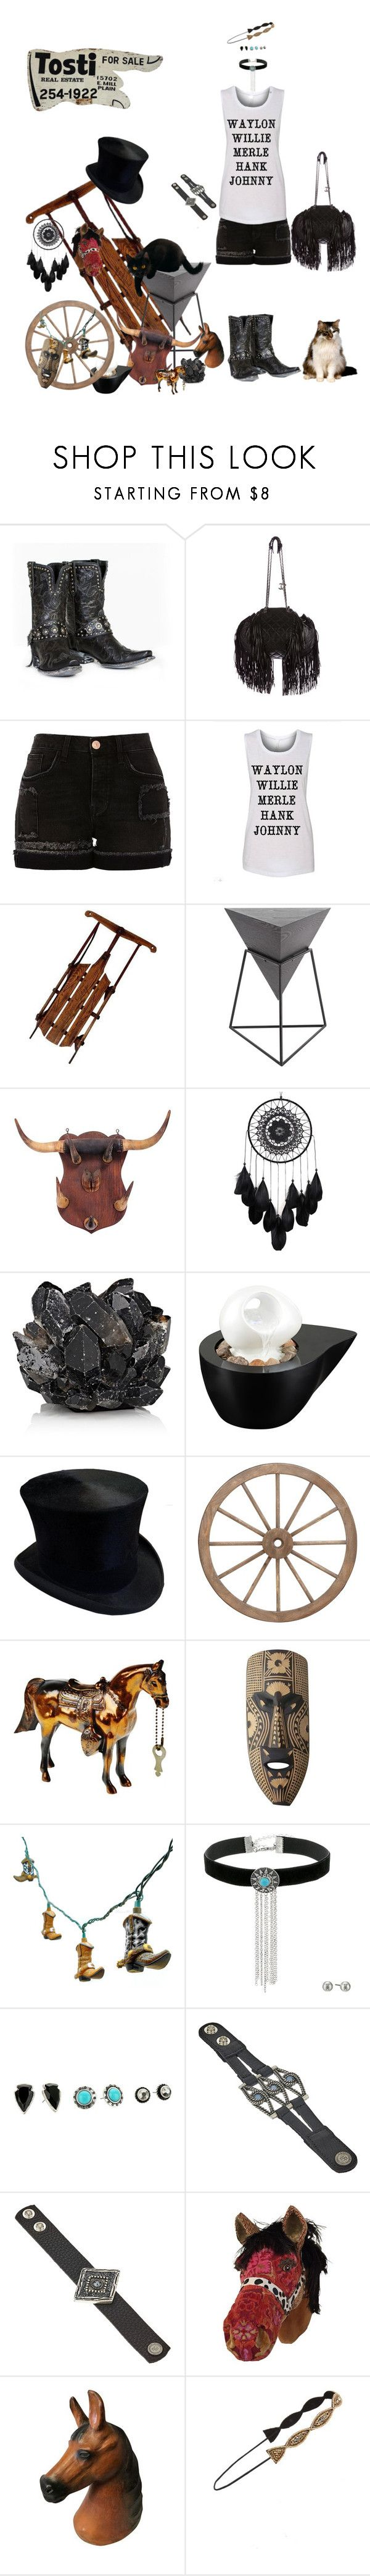 """Estate Sale Shopping"" by blackmagicmomma ❤ liked on Polyvore featuring Chanel, River Island, Uma, McCoy Design, John Timberland, M&F Western, Leatherock and Cara"